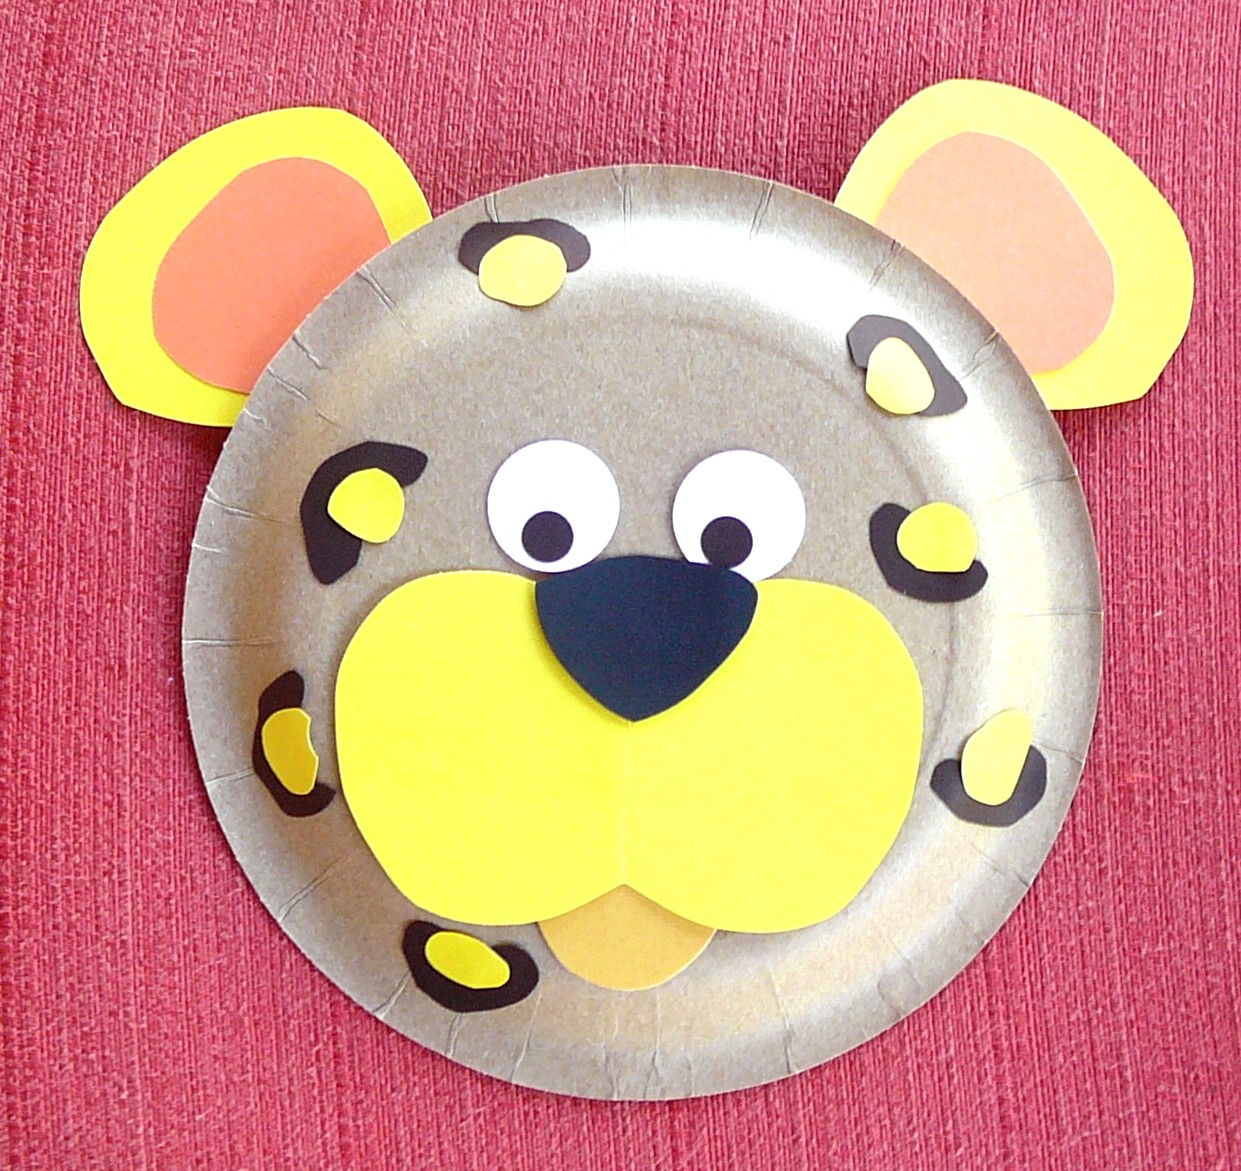 Paper plate animal crafts - Paper Plate Animals